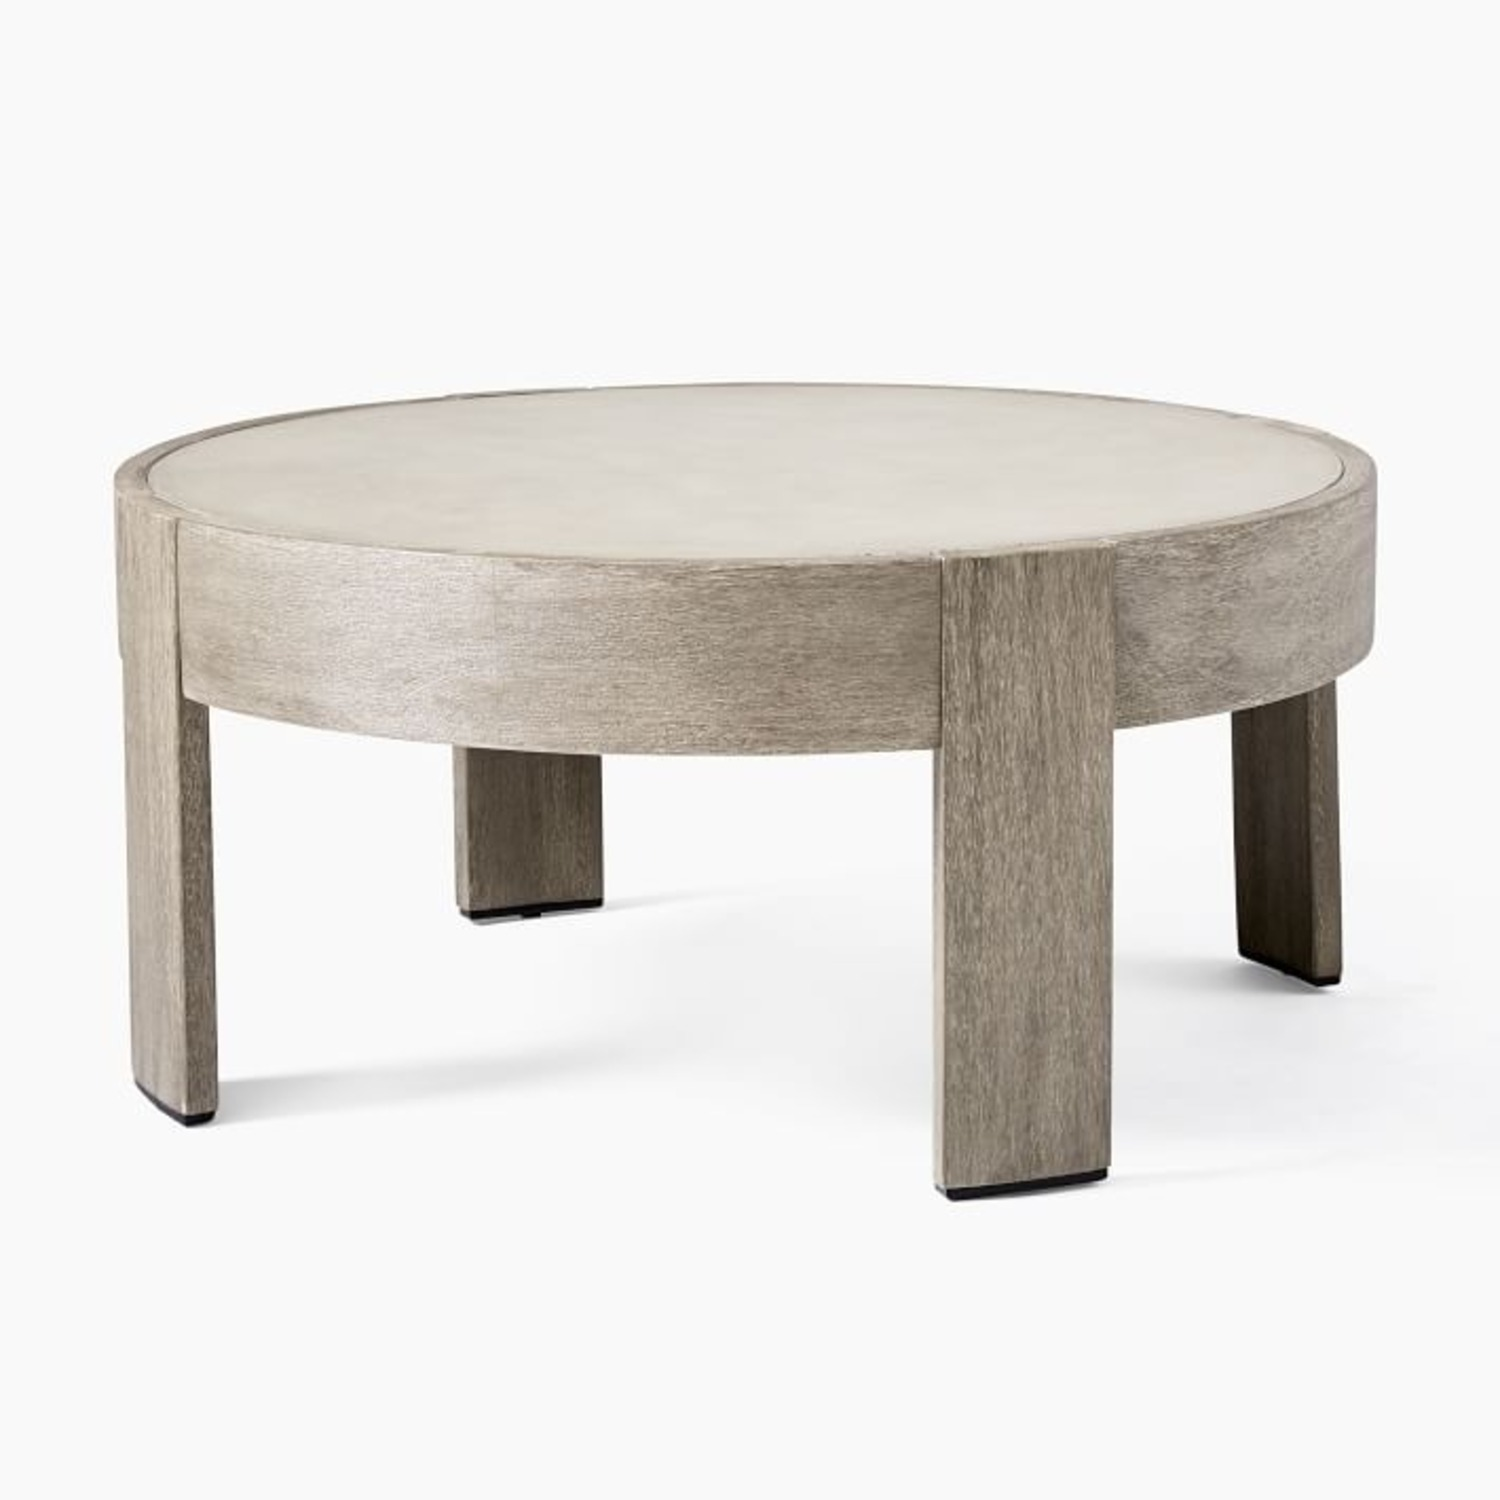 West Elm Portside Outdoor Concrete Coffee Table - image-2